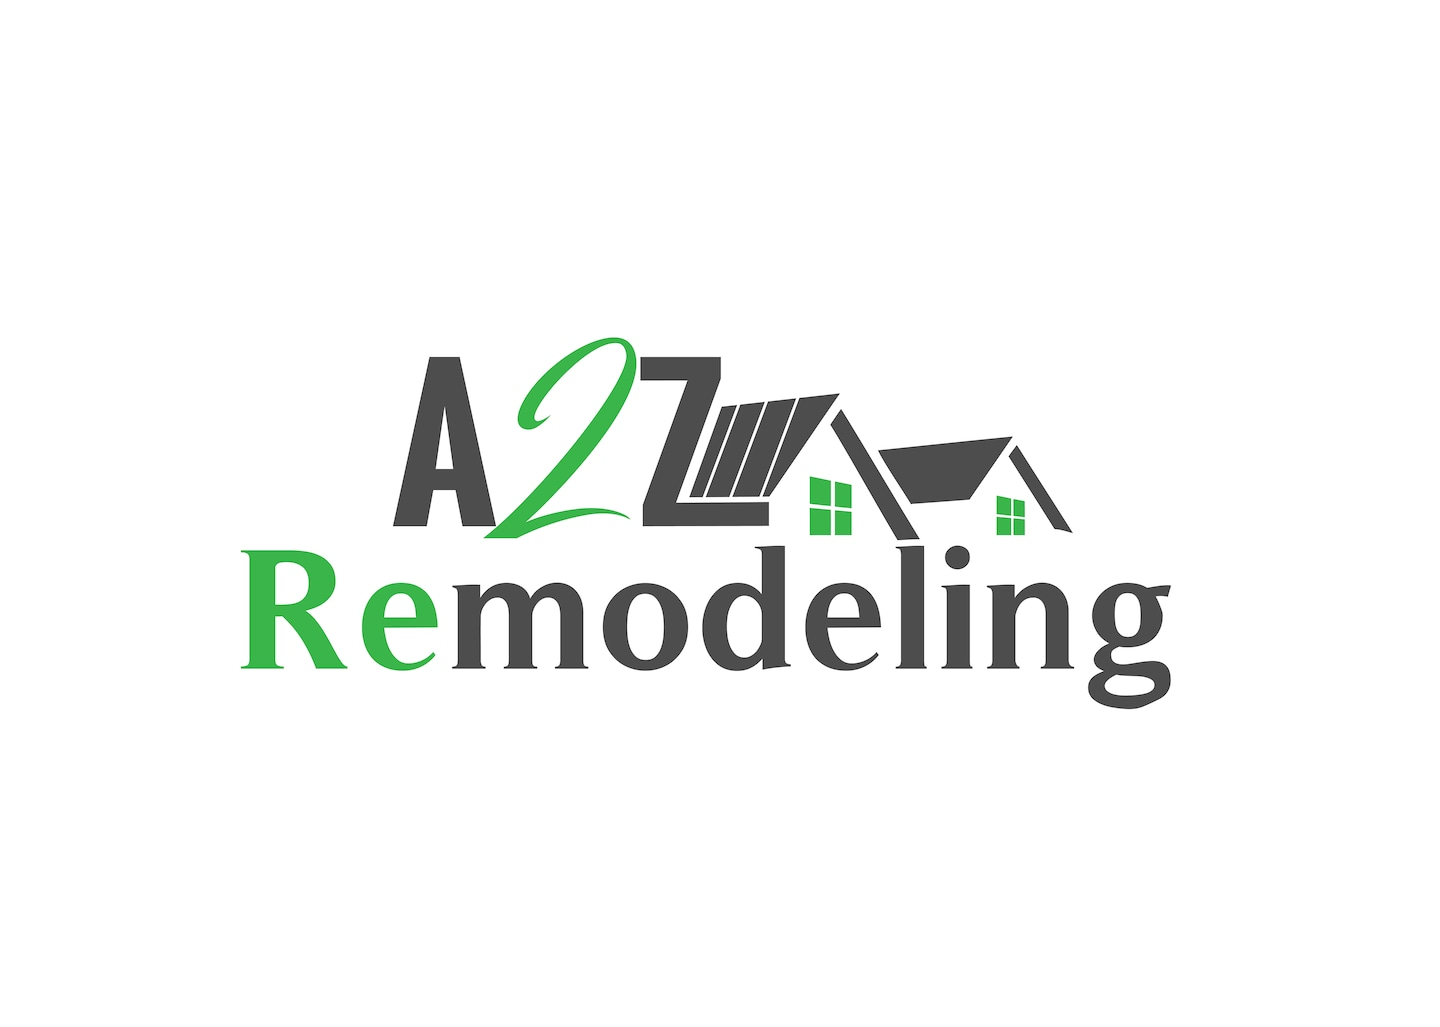 A2Z Remodeling Inc